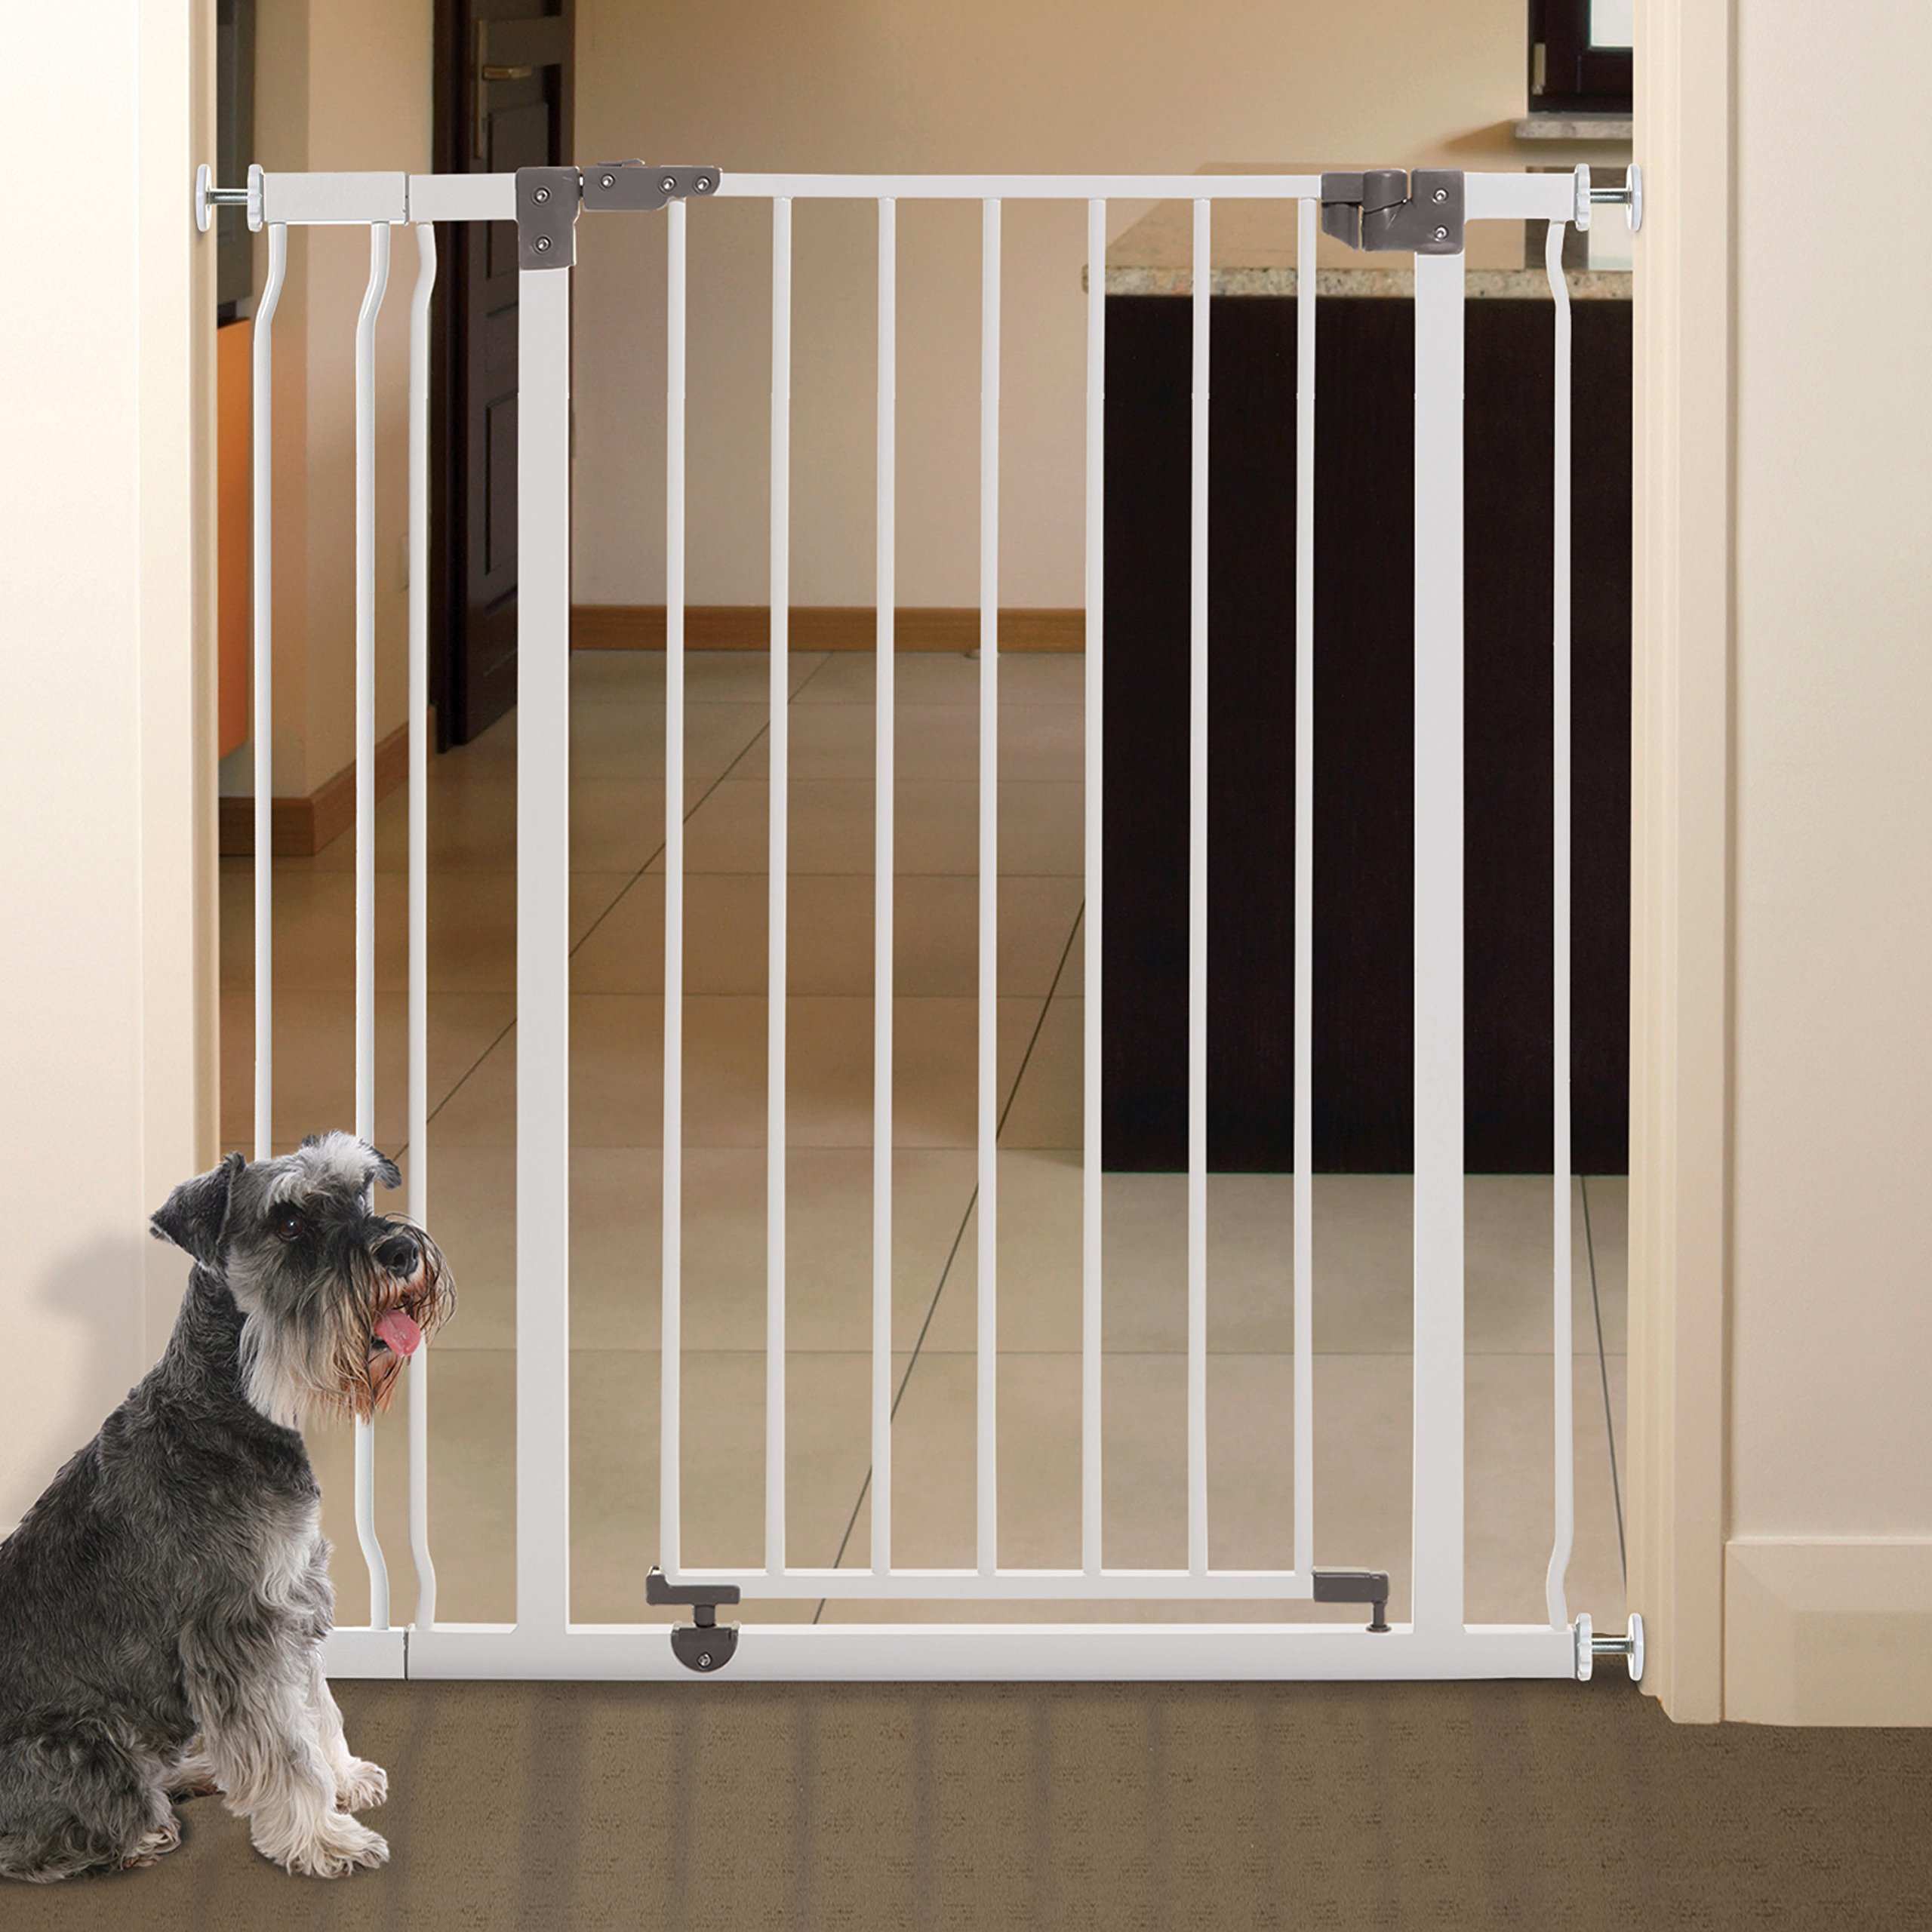 Dreambaby Liberty Tall Auto Close Security Gate w/ 3.5'' Extension by Dreambaby (Image #5)